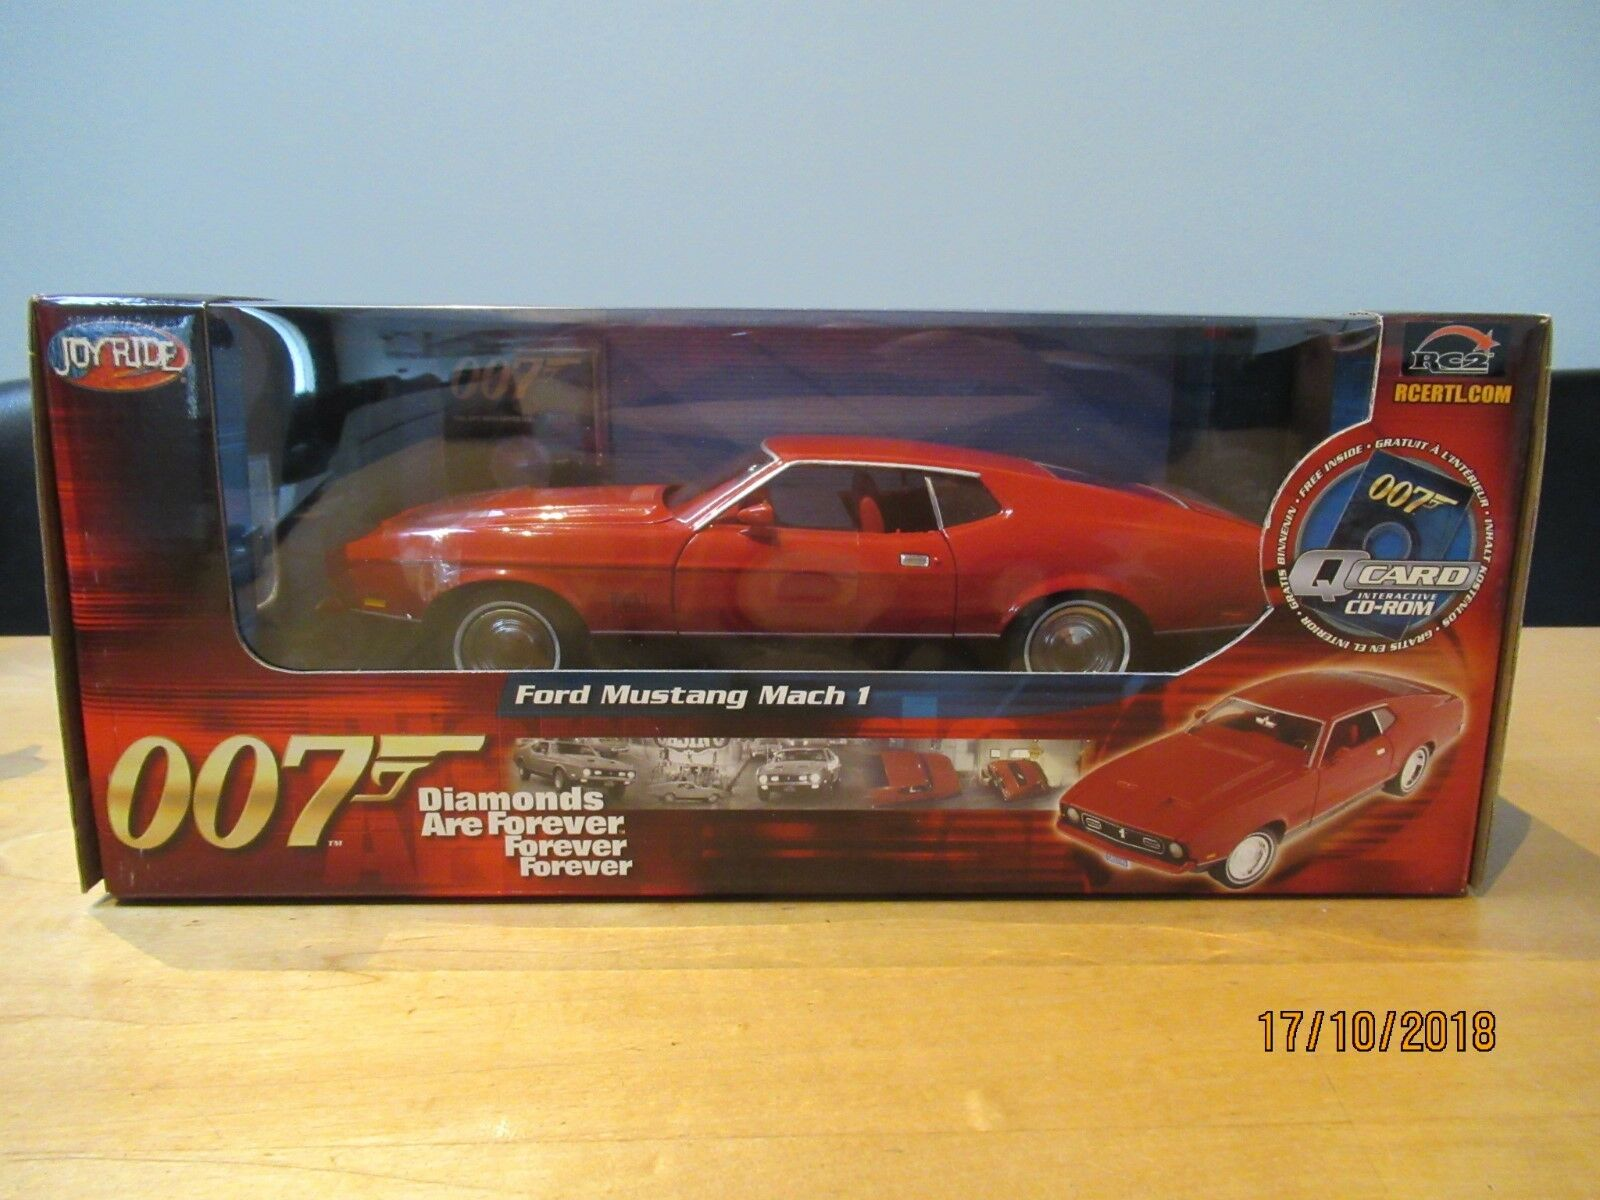 007 James Bond Ford Mustang ertl 1 18 33848 Diamonds Are Forever 1971 m&b 1 18